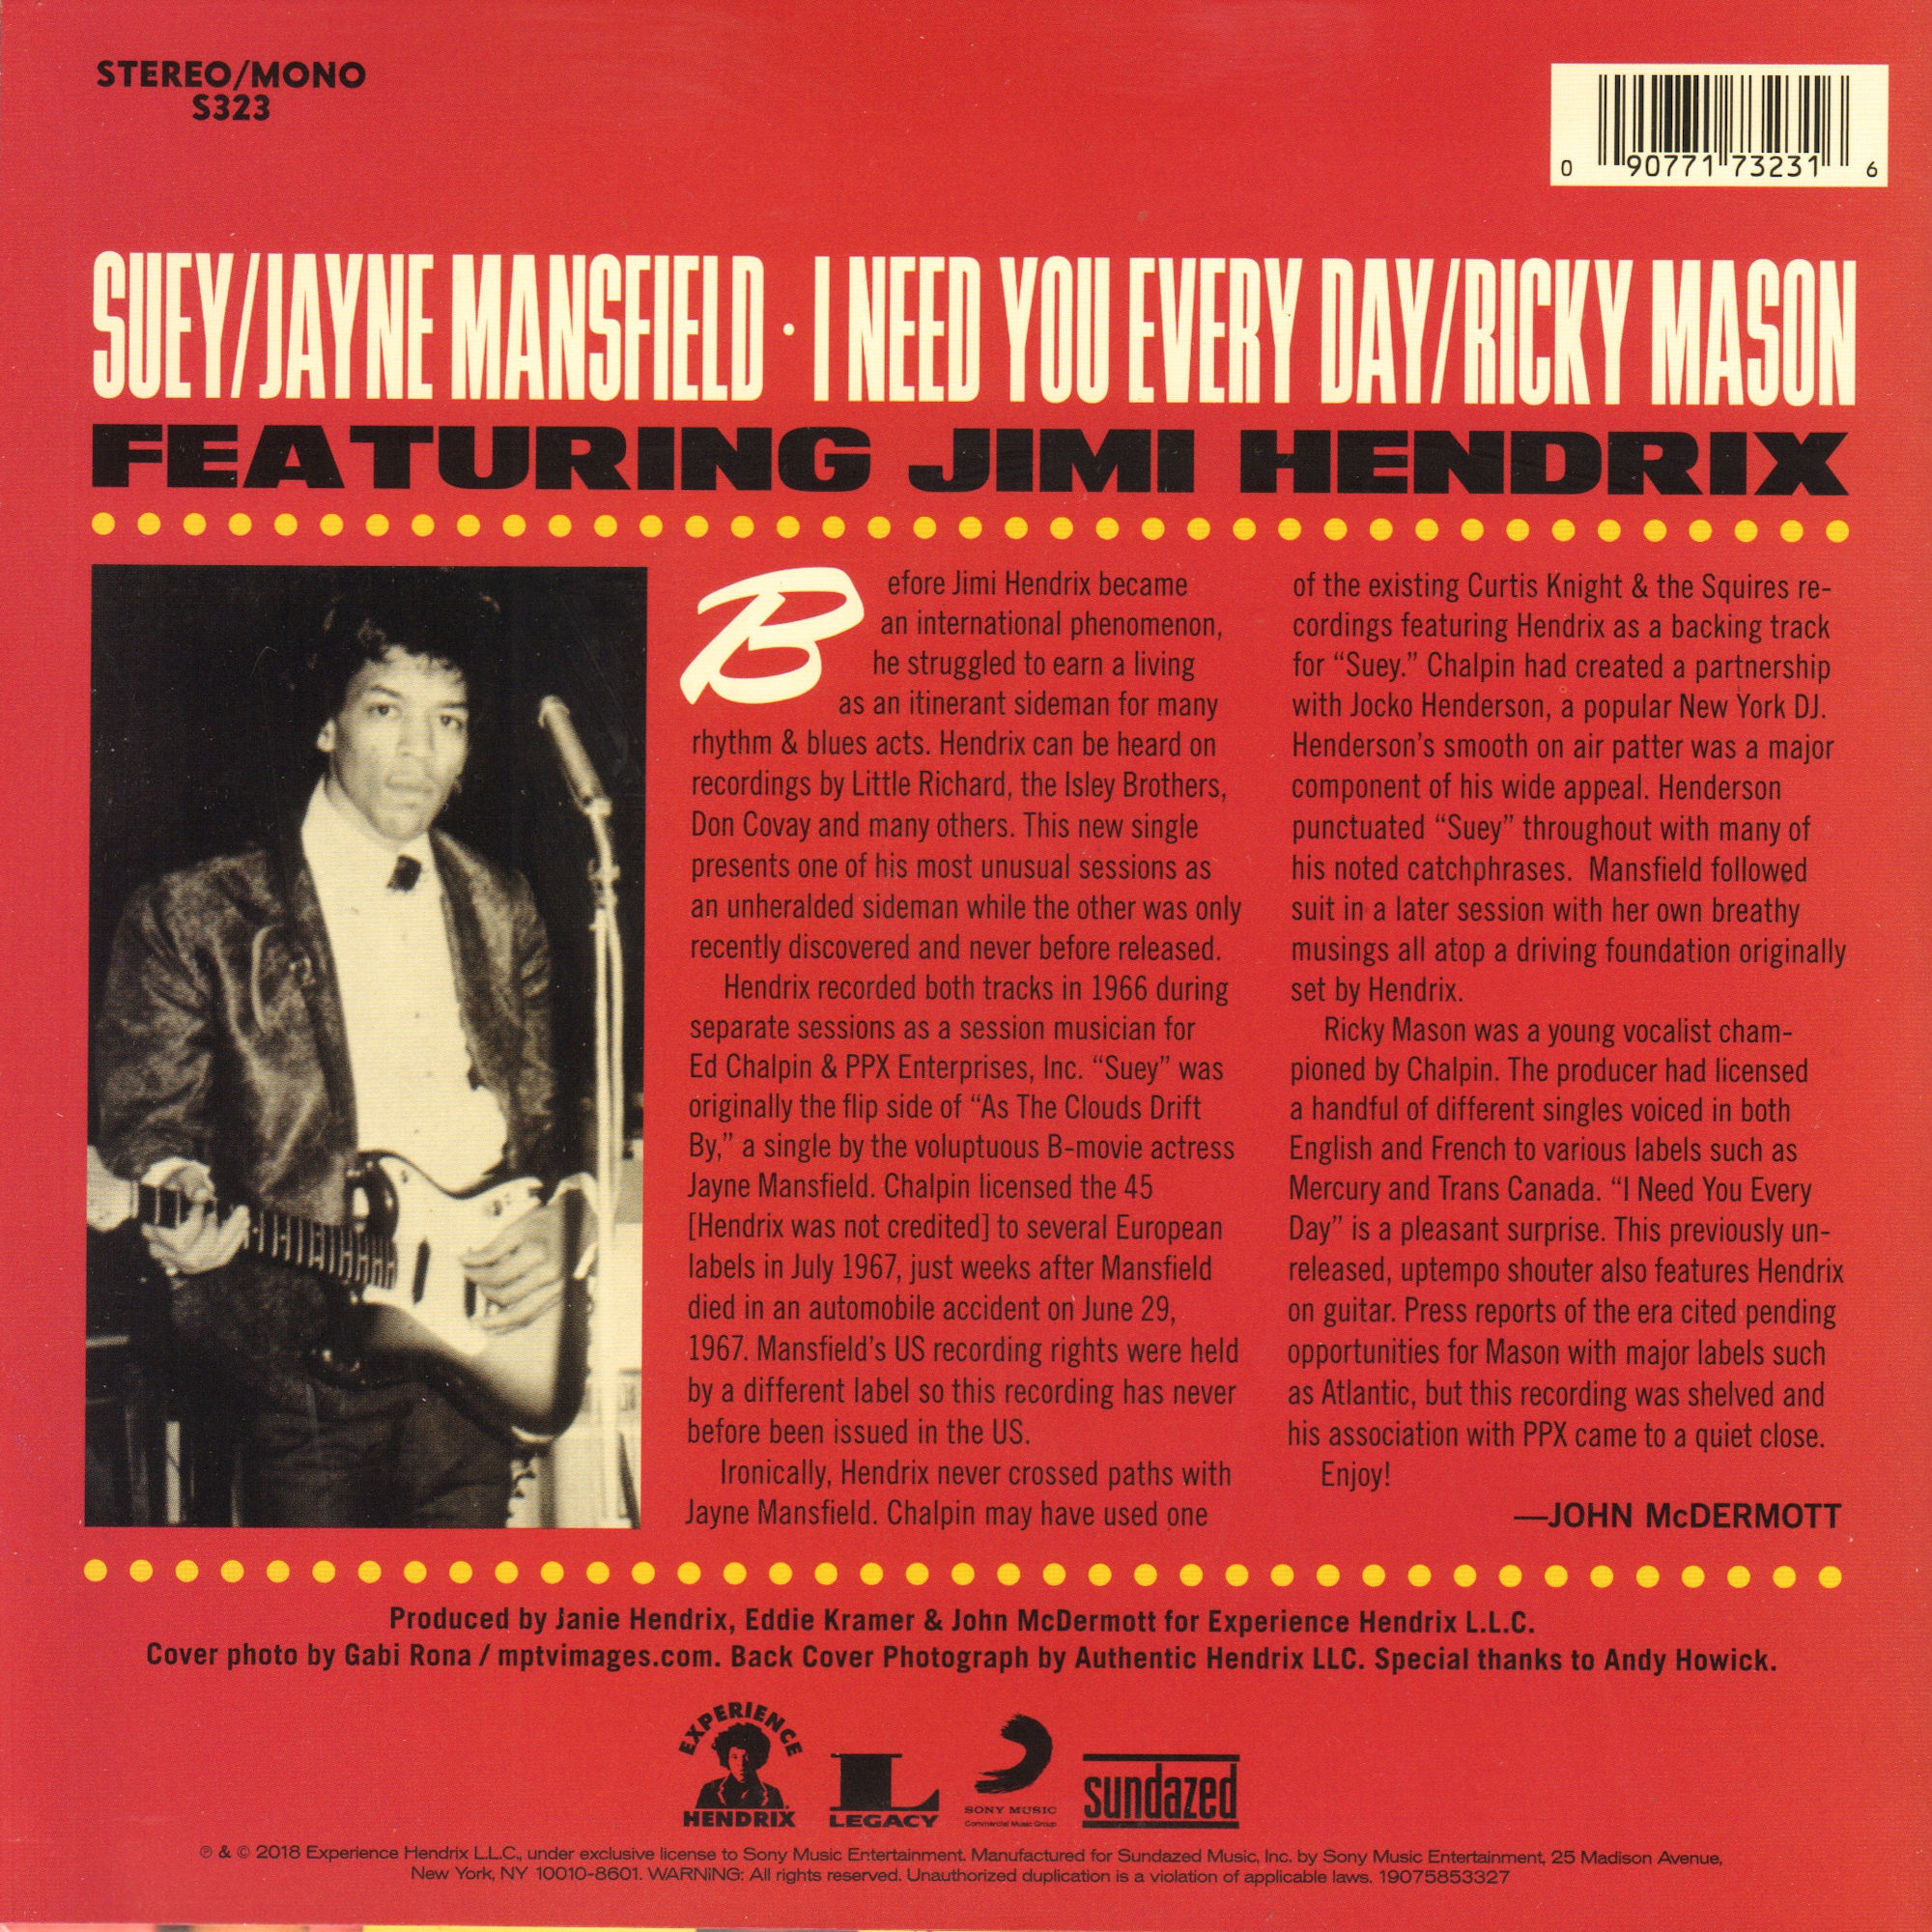 Discographie : Enregistrements pré-Experience & Ed Chalpin  - Page 9 ExperienceHendrixS323%20-%20Jimi%20Hendrix%20-%20Jayne%20Mansfield%20-%20Back